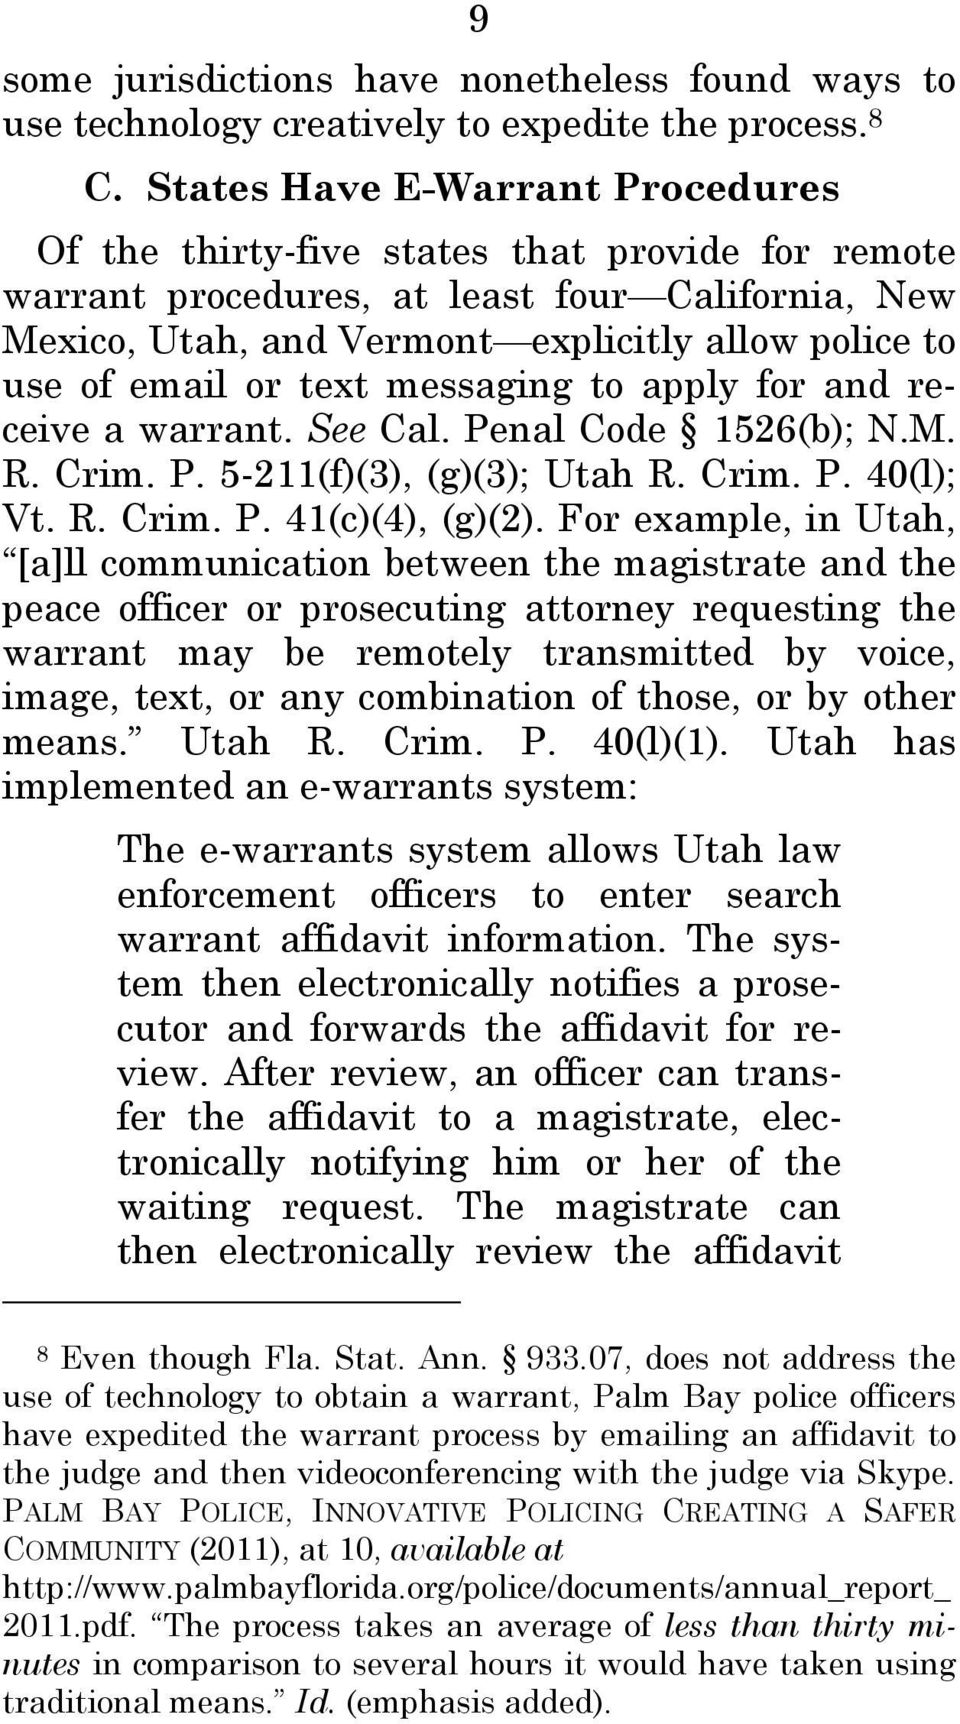 or text messaging to apply for and receive a warrant. See Cal. Penal Code 1526(b); N.M. R. Crim. P. 5-211(f)(3), (g)(3); Utah R. Crim. P. 40(l); Vt. R. Crim. P. 41(c)(4), (g)(2).